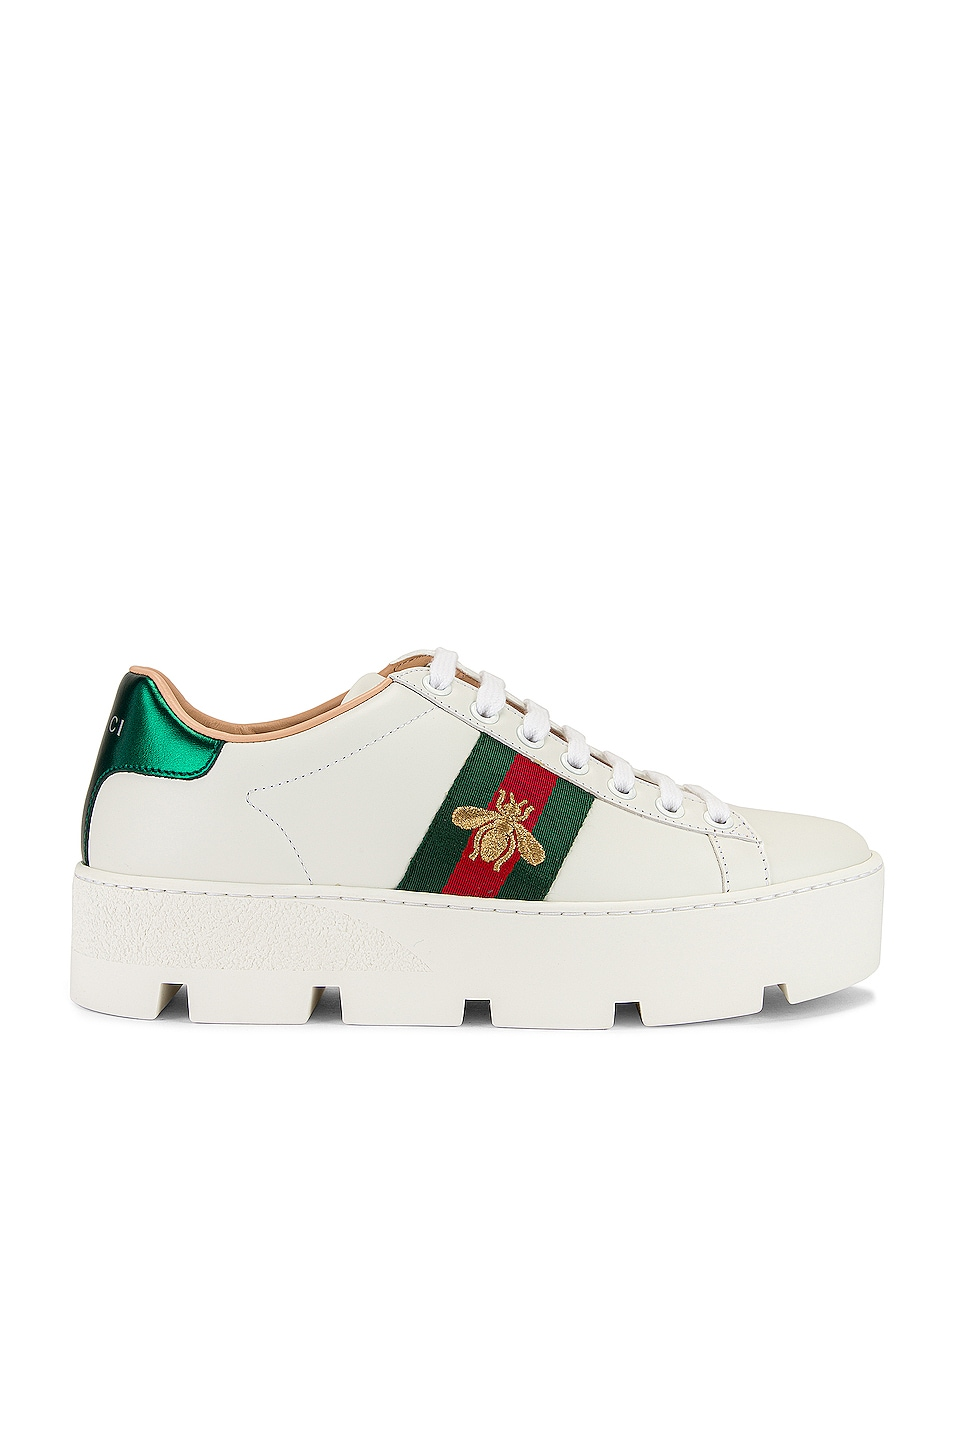 Image 1 of Gucci New Ace Platform Sneakers in White & Green & Red